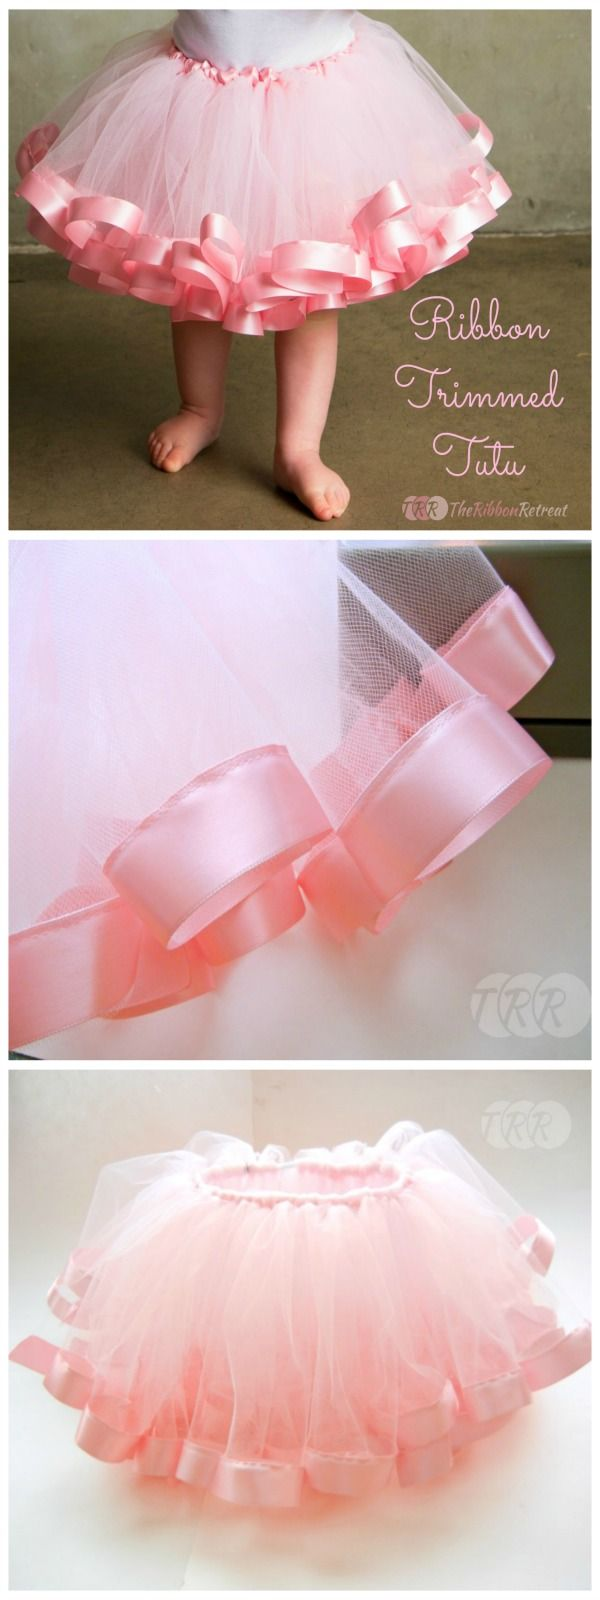 Ribbon Trimmed Tutu Tutorial - The Ribbon Retreat Blog. Adds something really cute.